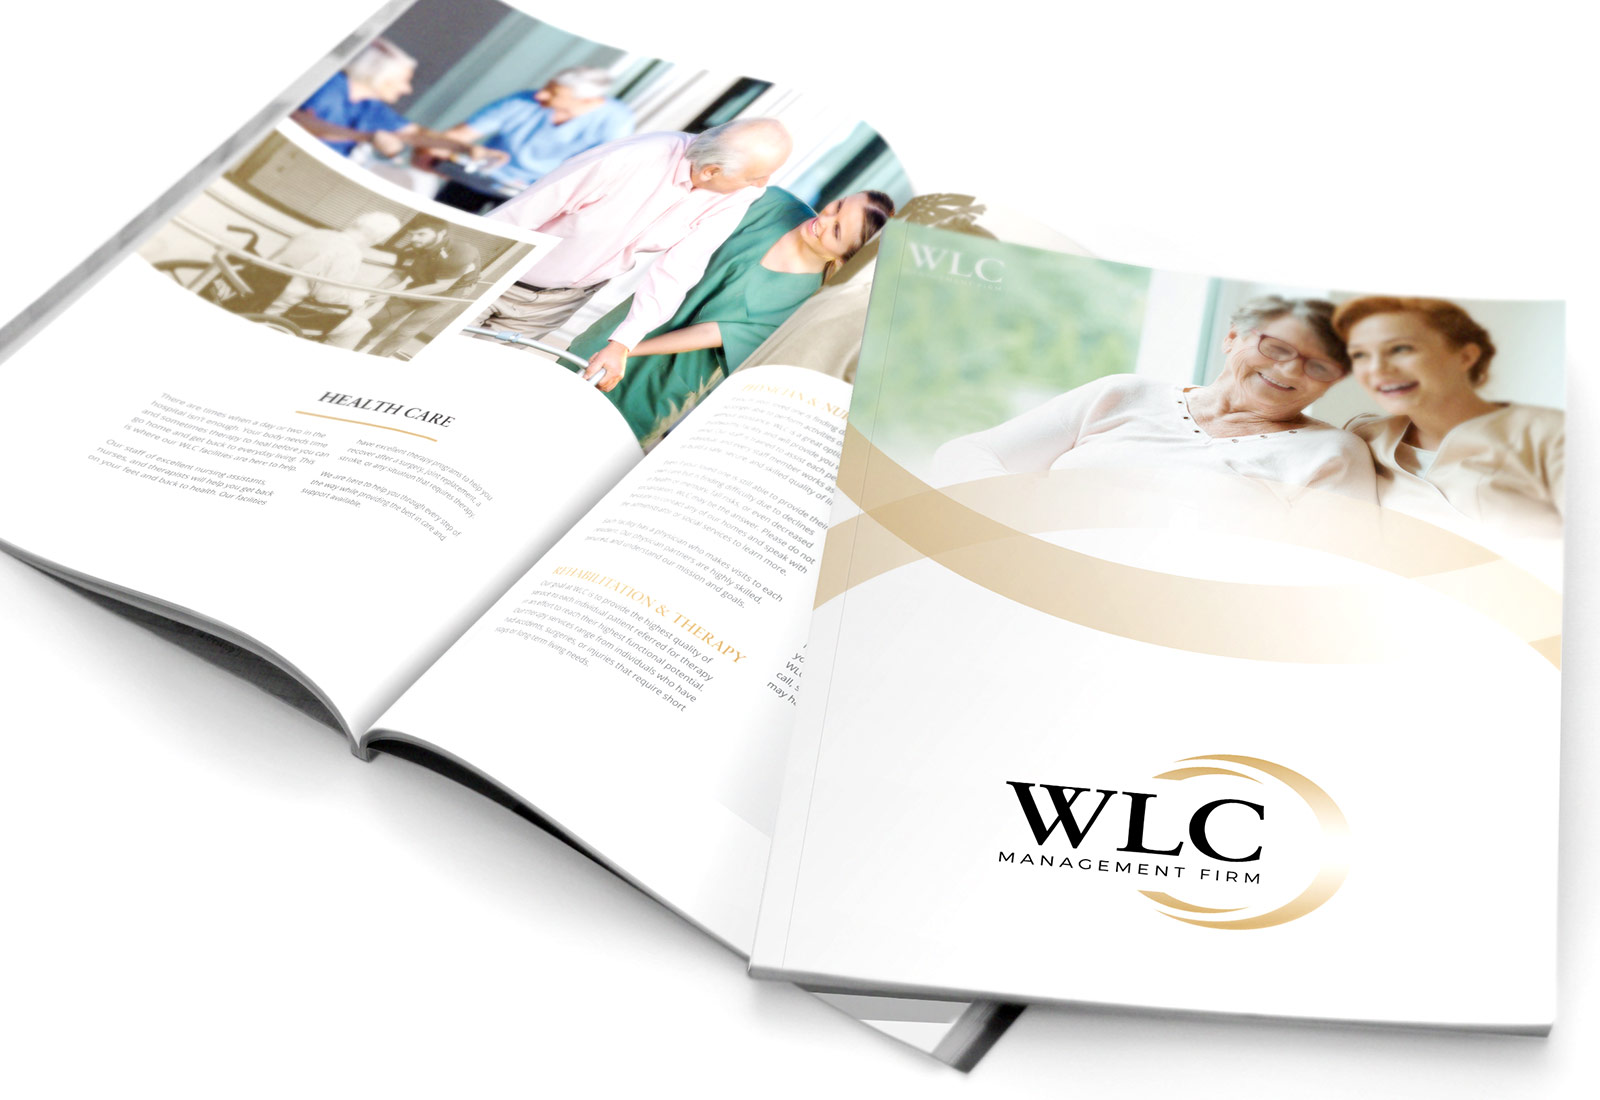 Assisted Living Senior Living Facility Brochure Design